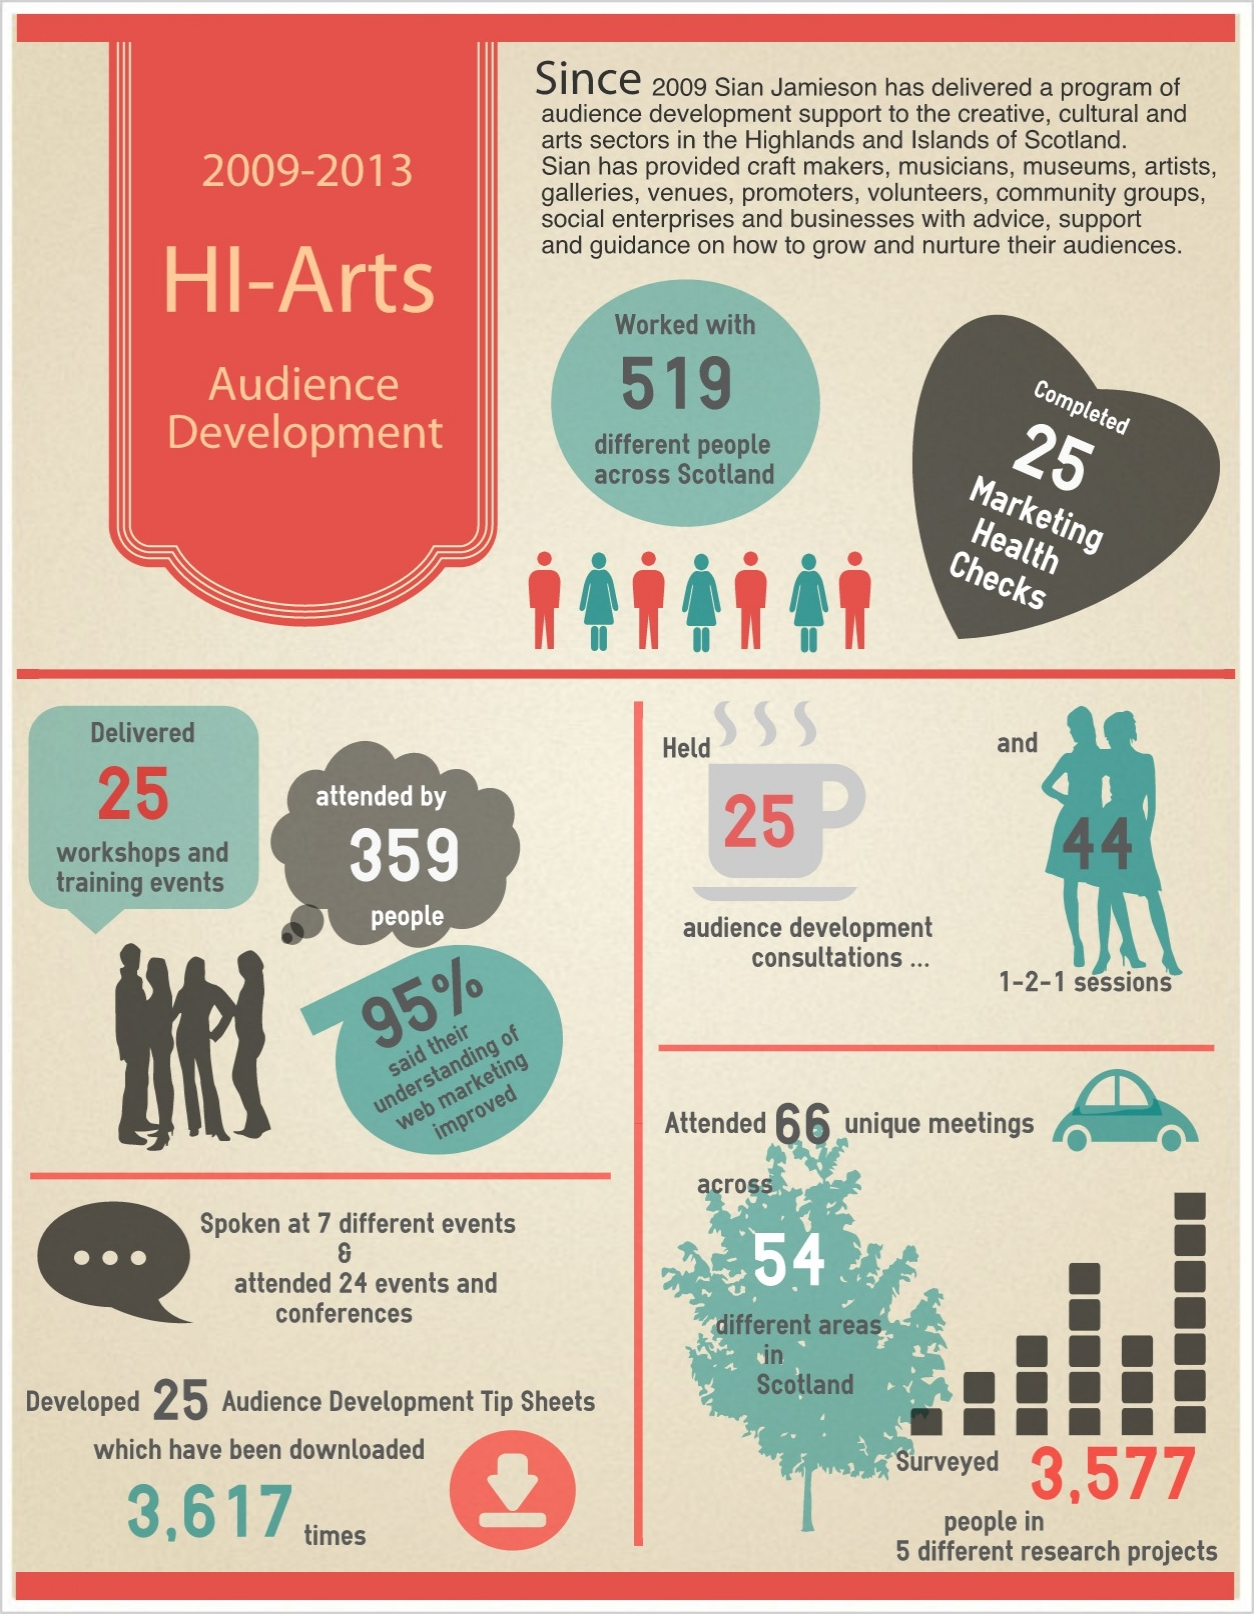 HI-Arts audience development